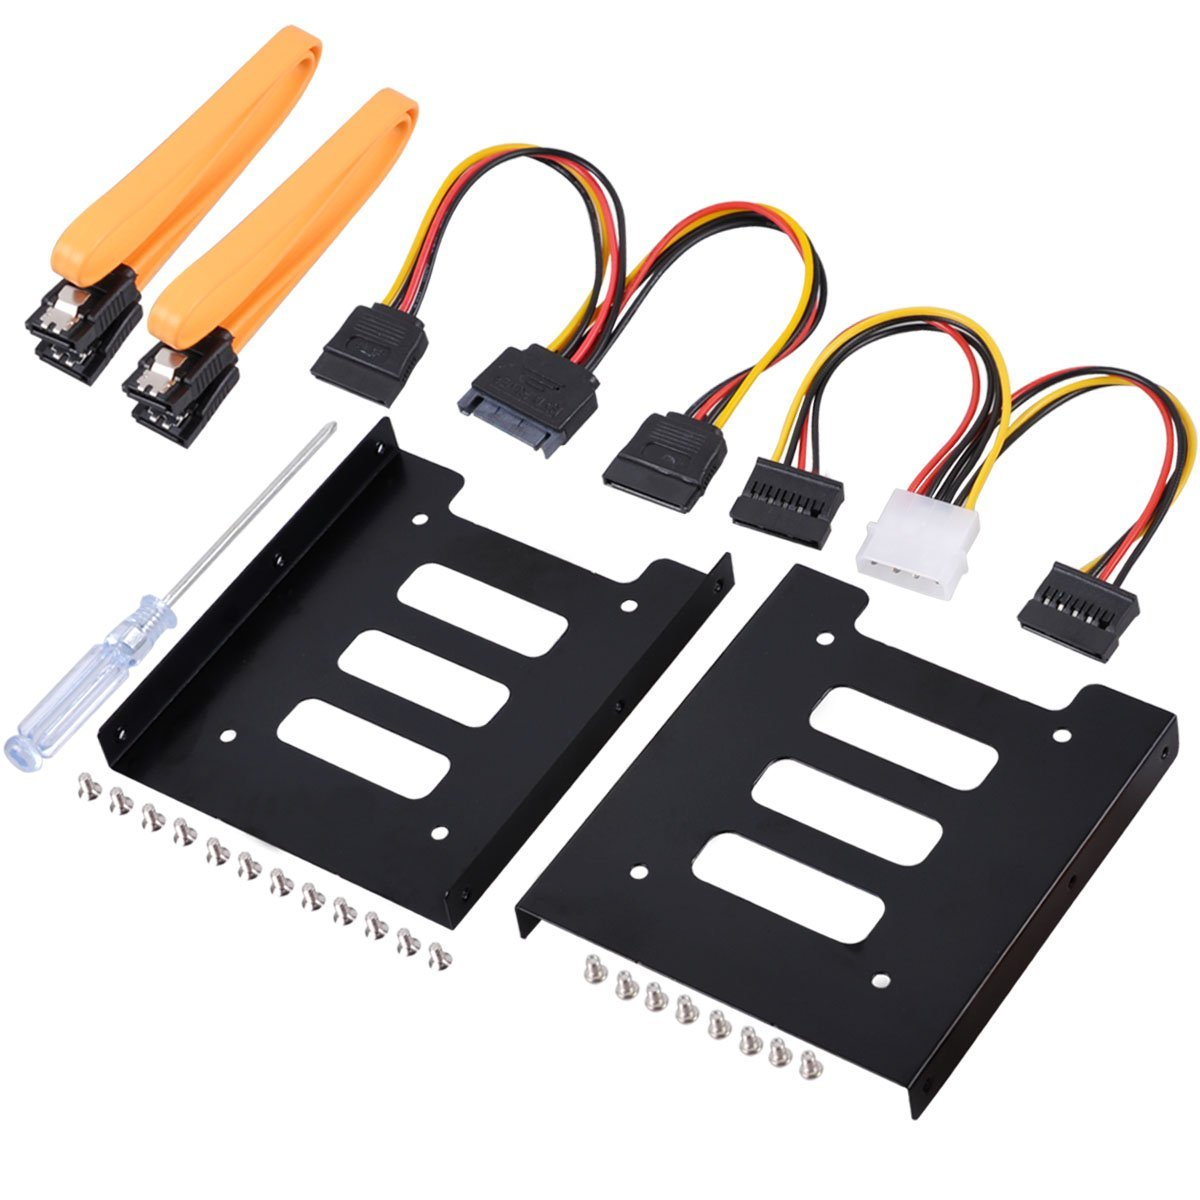 UCEC 2.5 Inch SSD to 3.5 Inch Internal Hard Disk Drive Mounting Kit (SATA Data Cables and Power Cables Included) (2 x Bracket Conversion Frame)